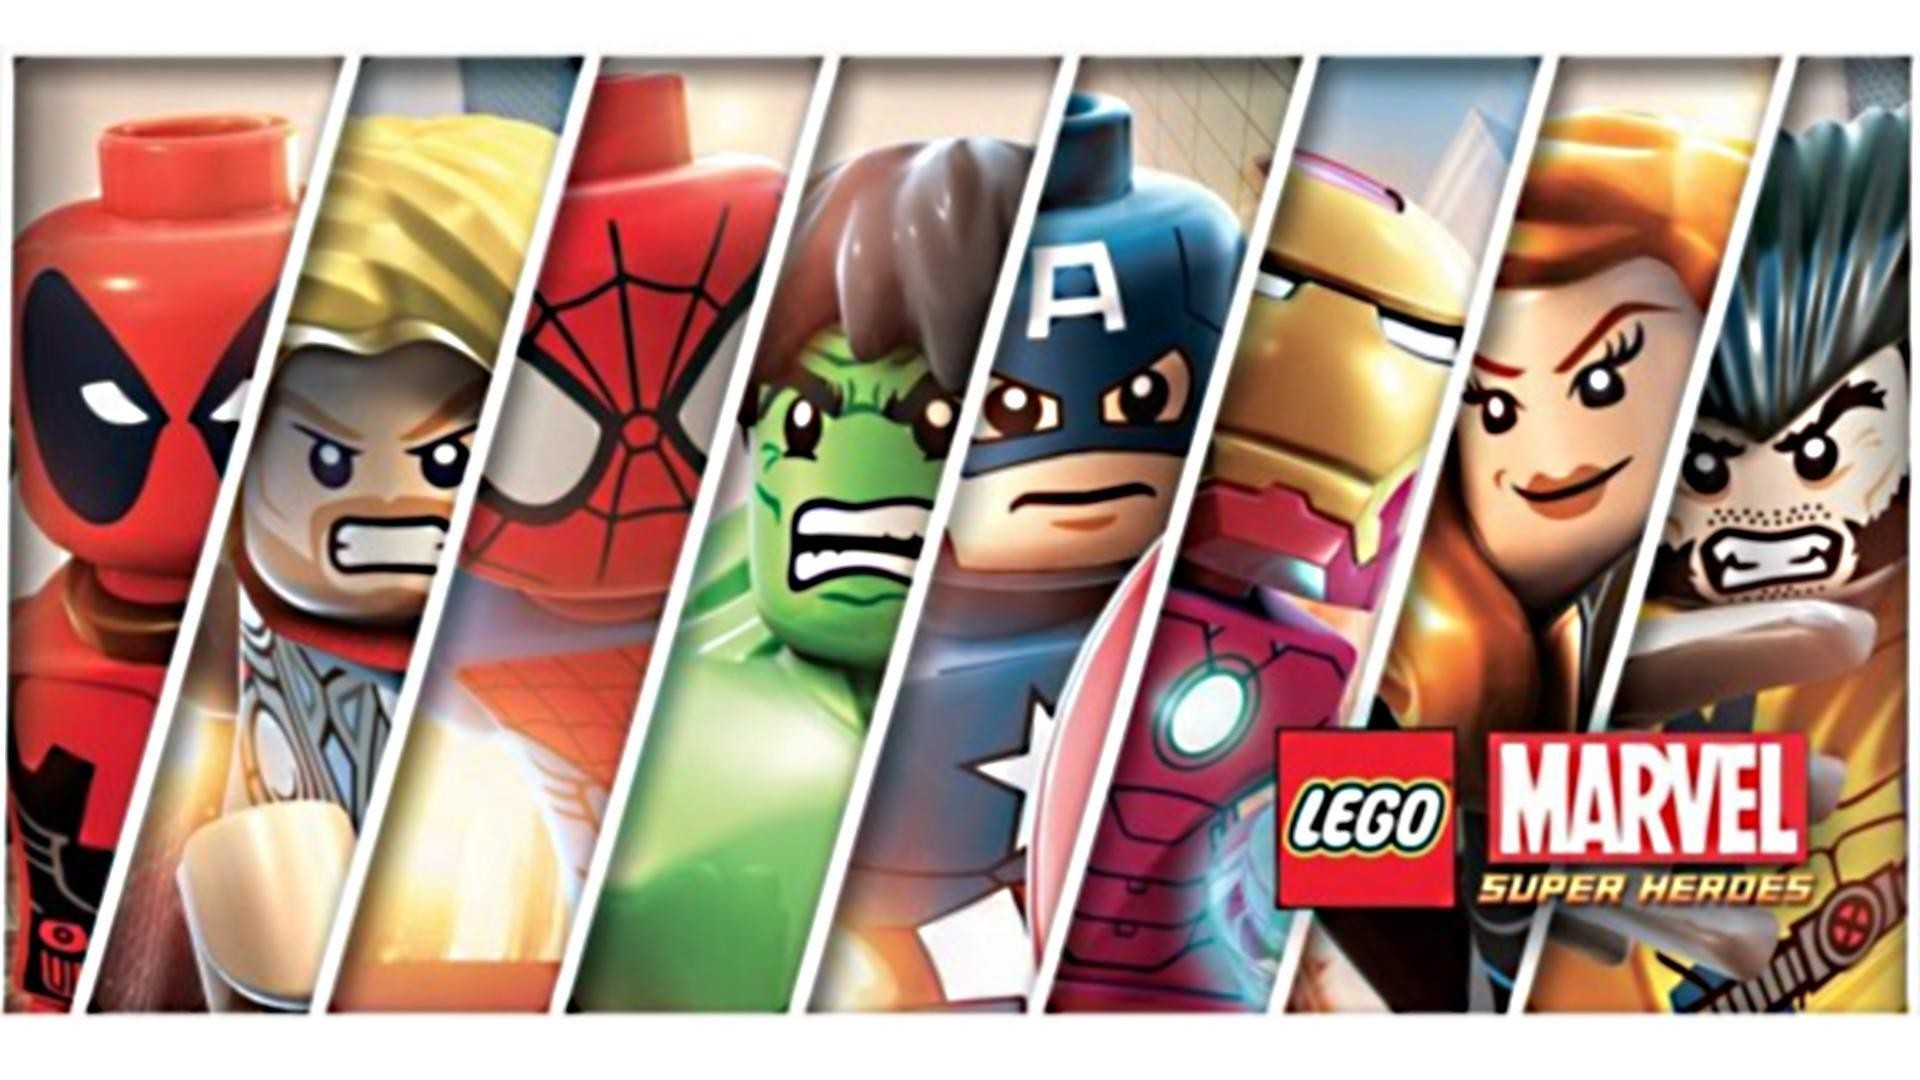 1920x1080 Lego Wallpaper Marvel Super Heroes Lego Superheroes Marvel Iron .